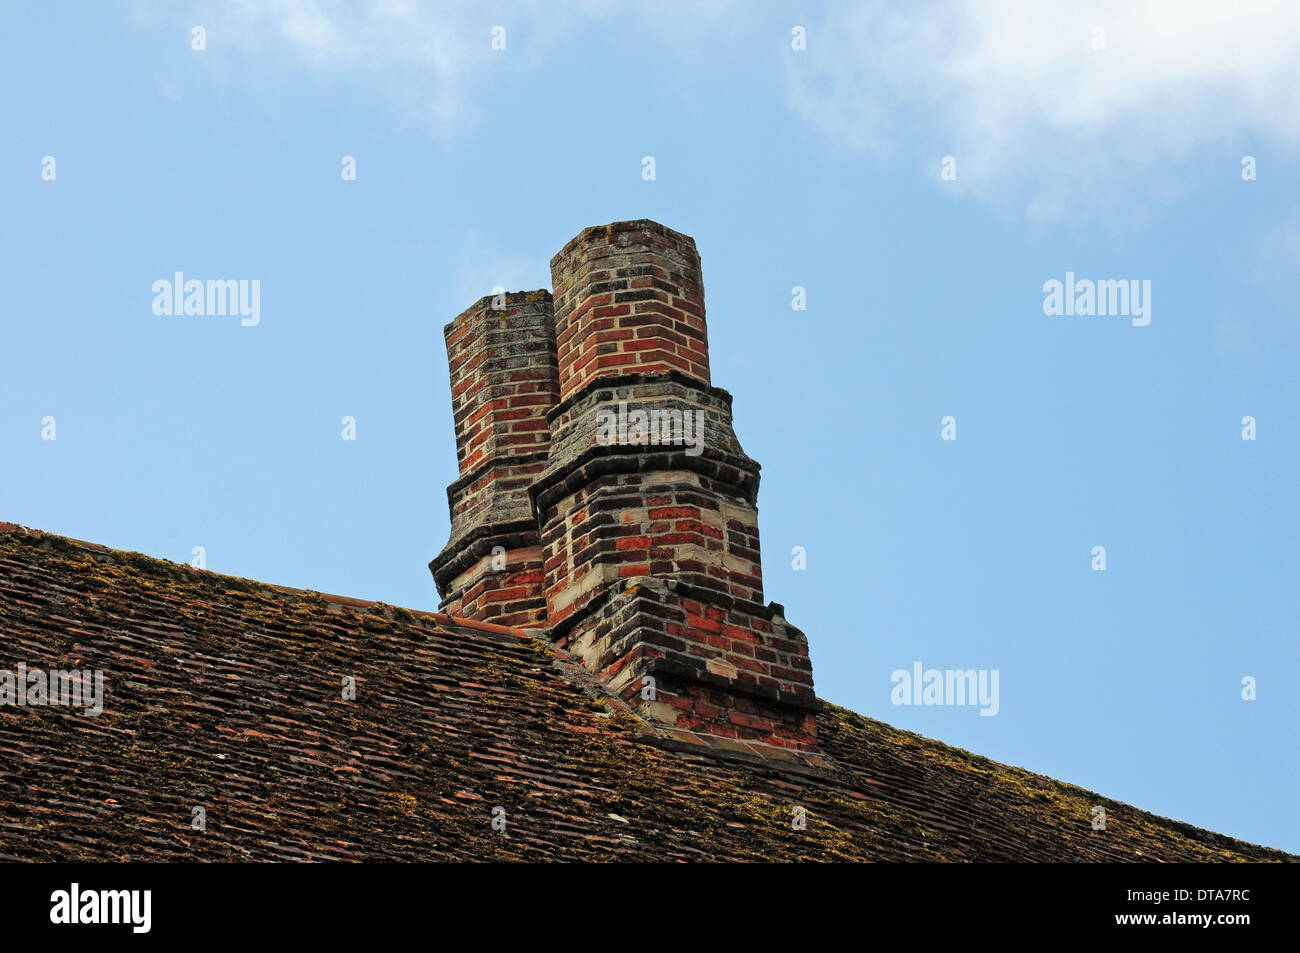 Old chimney pots, Lavenham. - Stock Image